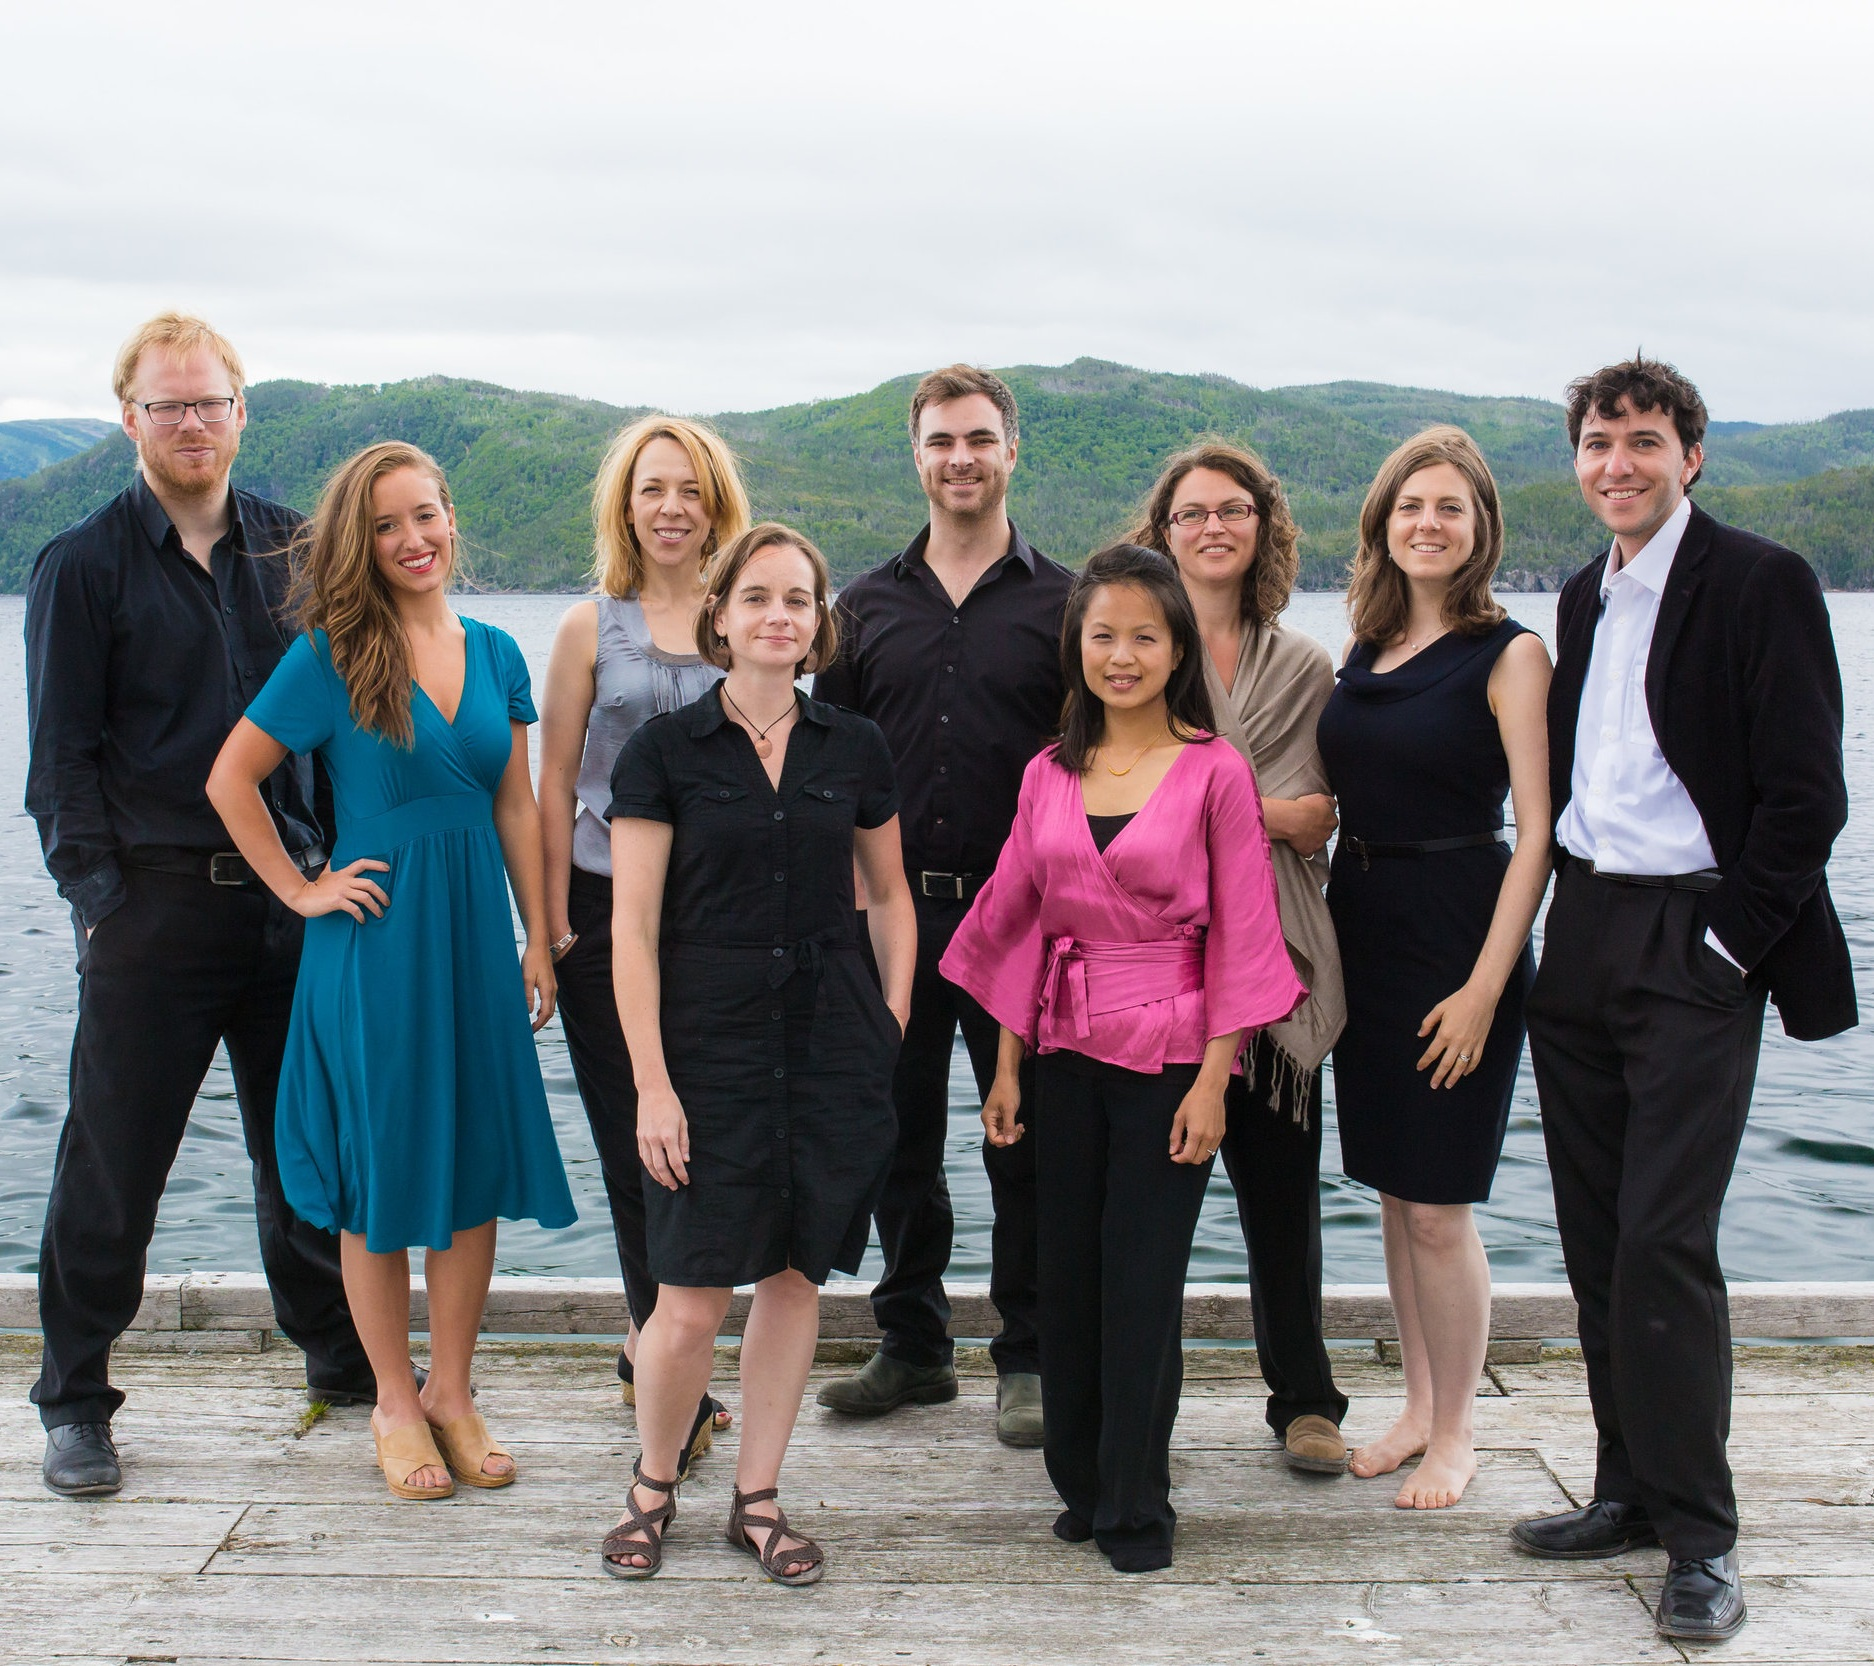 Gros Morne Summer Music - The musicians who make up Gros Morne Summer Music have been part of our program for years, and their scope and repertoire continue to grow. We are delighted once again to welcome back David Maggs and Diederik van Dijk and their talented ensemble of classical musicians for what promises to be another outstanding performance at the Woody Point Heritage Theatre and St. Patrick's Church.This year, GMSM presents, Dark by Five:Founded in 2012, Dark by Five is the ensemble-in-residence at Canada's Gros Morne Summer Music Festival in Newfoundland and Labrador. Through their creative residencies, the members of Dark by Five converge to explore and expand the boundaries of musical presentation by creating compelling and thought-provoking original productions that weave together the worlds of classical, contemporary, and popular music; theatre, dance, literature, poetry, visual art, and visual media.Among Dark by Five's original creations are Trolley Car, a chamber opera by Canadian composer Jason Nett; Revolution, a musical presentation on David Ives' Variations on the Death of Trotsky; and Beyond Words, a multi-disciplinary stage collaboration with Canadian poet, Don McKay.As a musical ensemble, Dark by Five also re-imagines iconic symphonic works turning them into innovative arrangements for chamber ensemble. Among Dark by Five's repertoire are Copland Appalachian Spring, Shostakovich Symphony No. 10, Berlioz Symphonie Fantastique, and Respighi Pines of Rome.